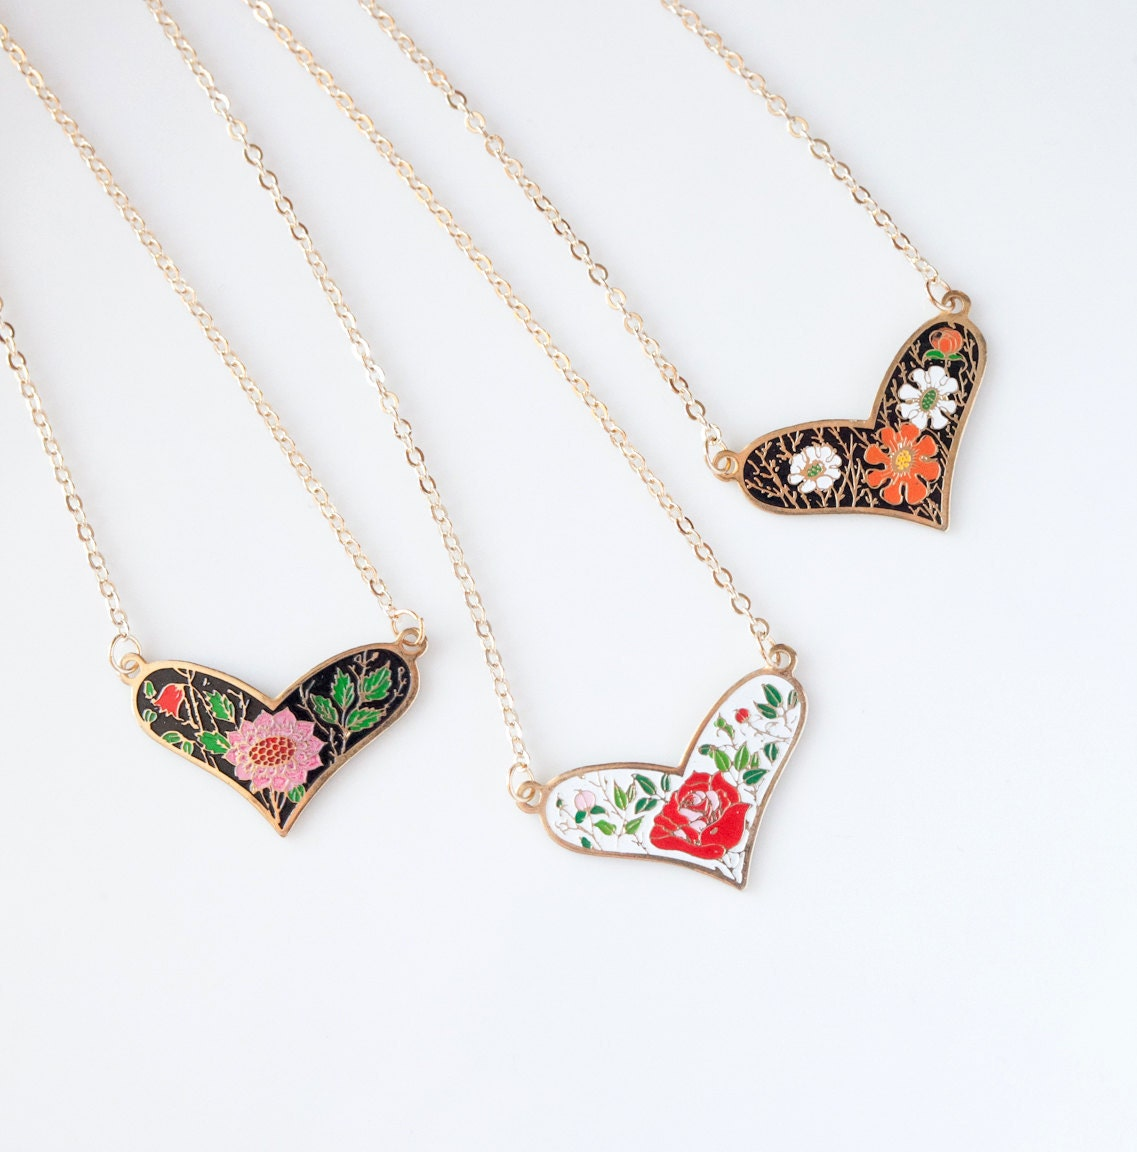 Floral Heart Necklace - Pink Mum, Red Rose or Orange Daisy - Pick one - saylorrose